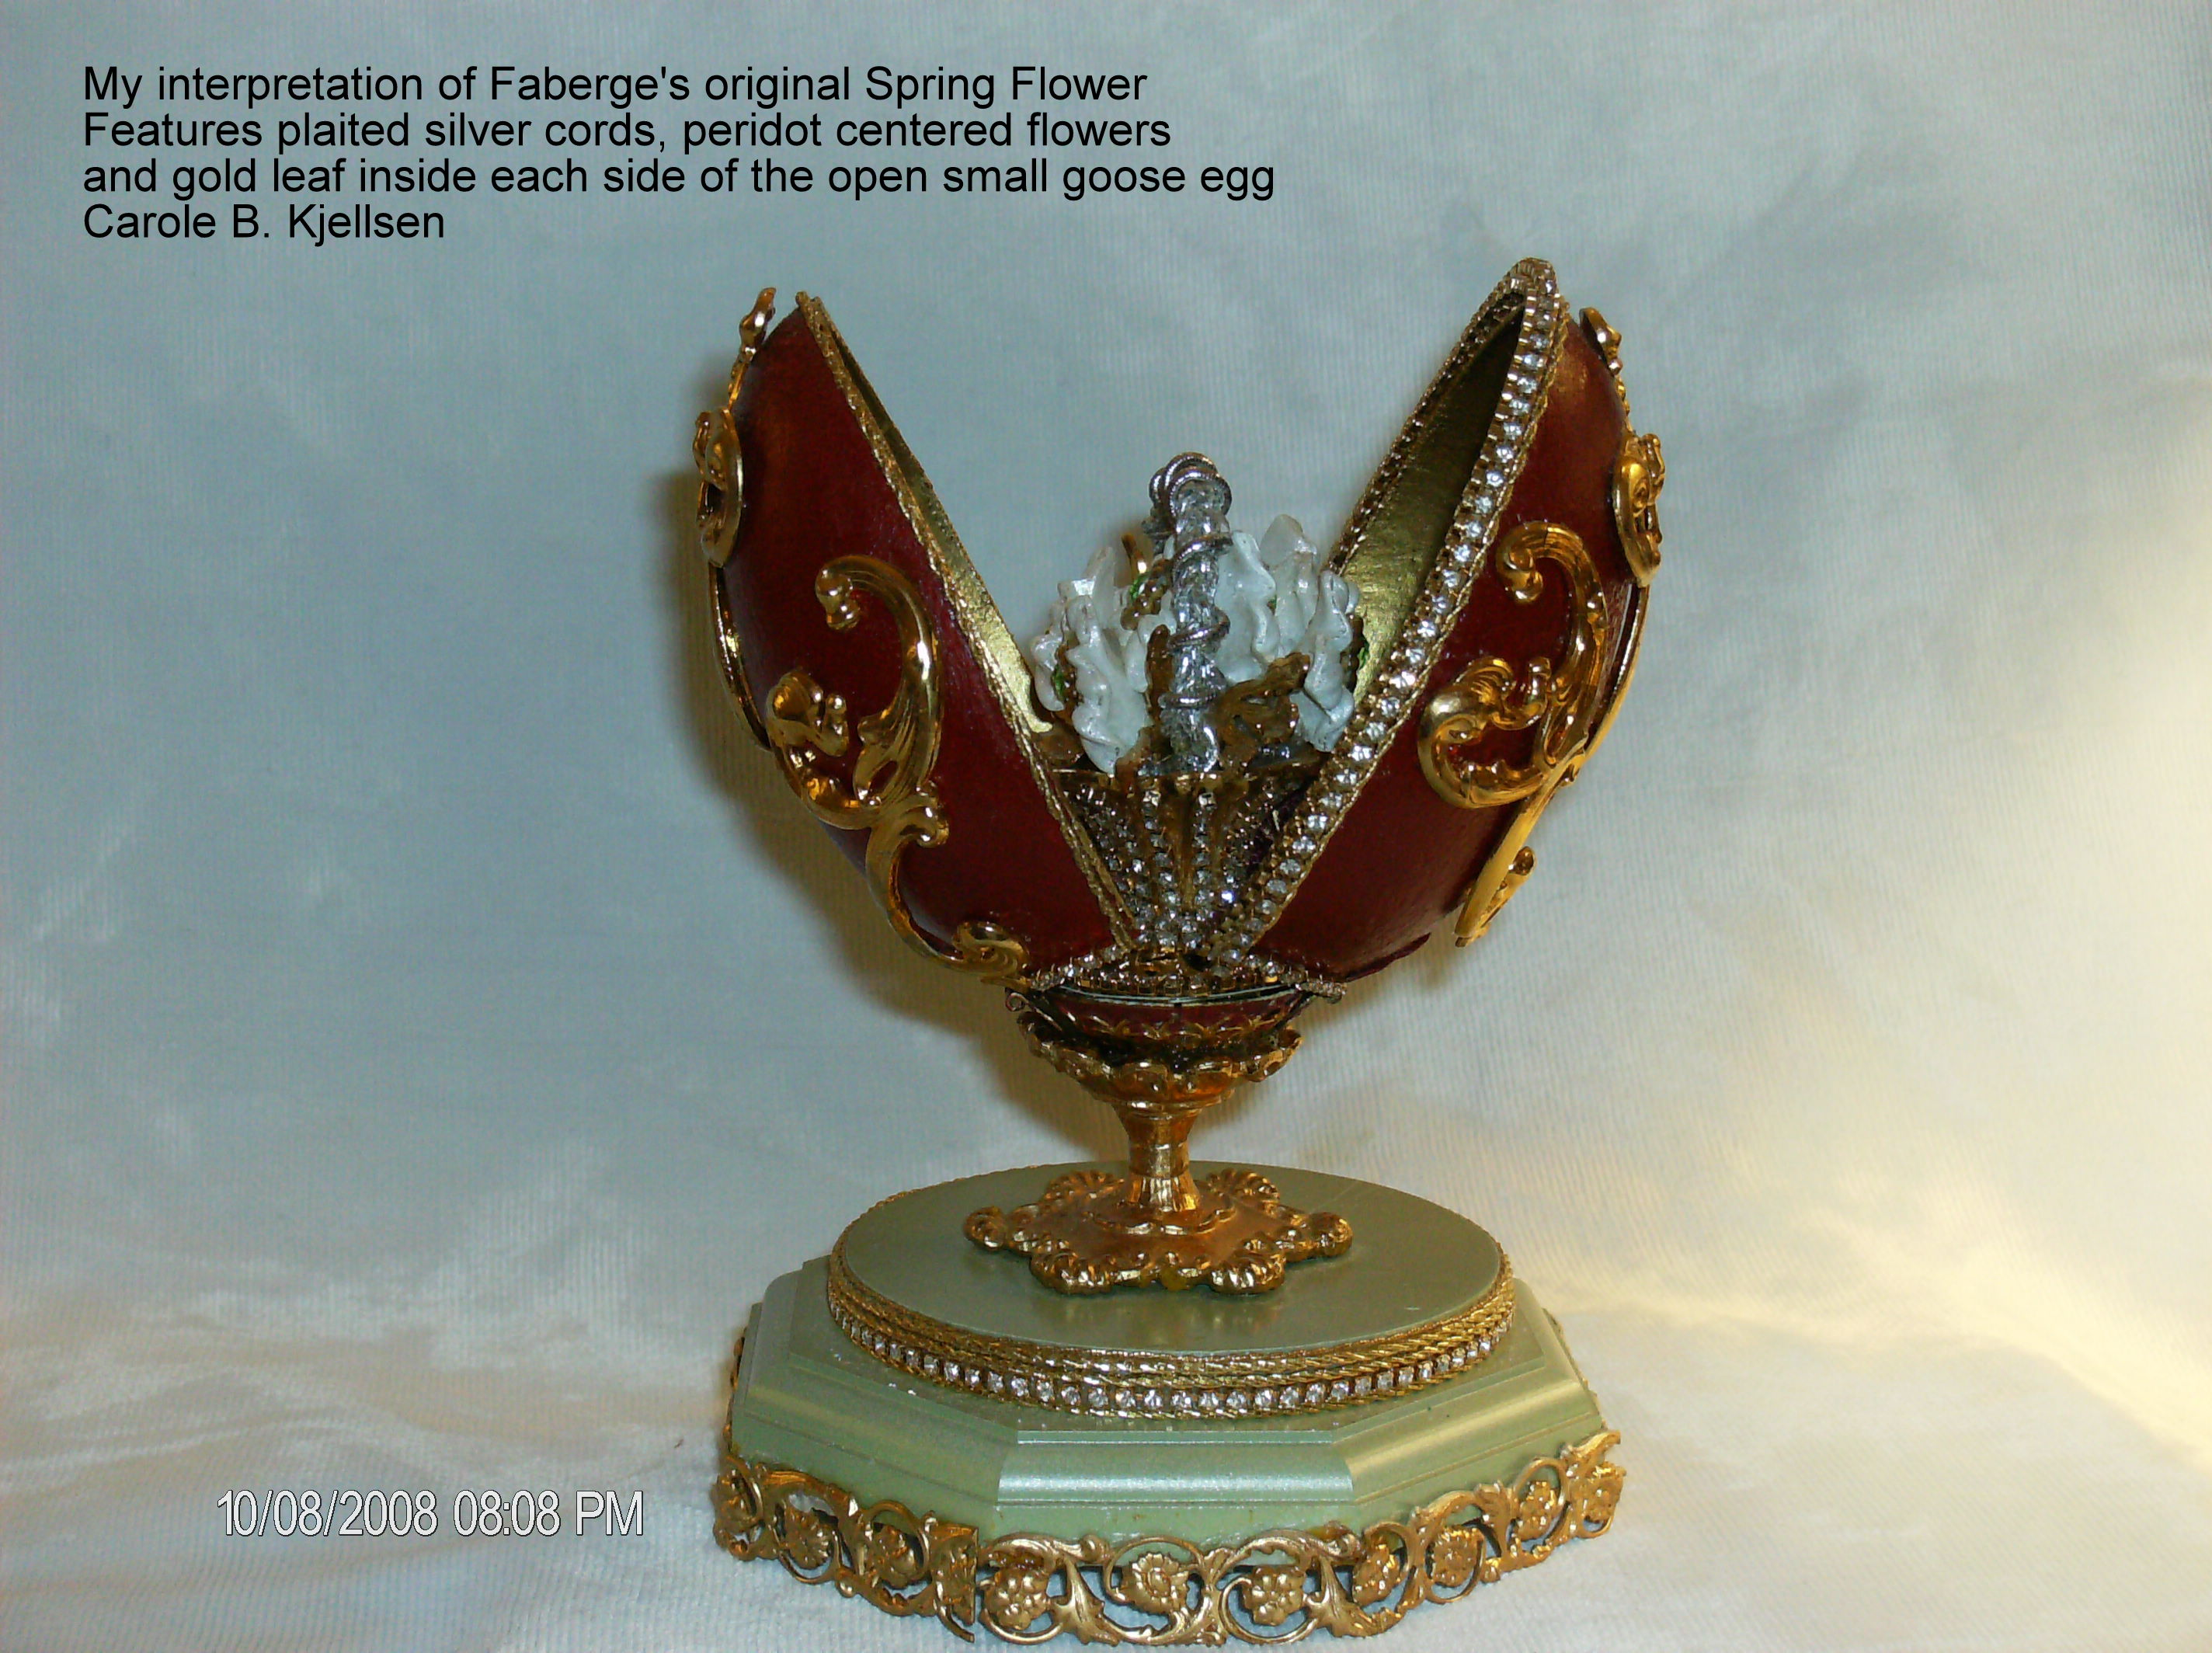 More Faberge Interpretations